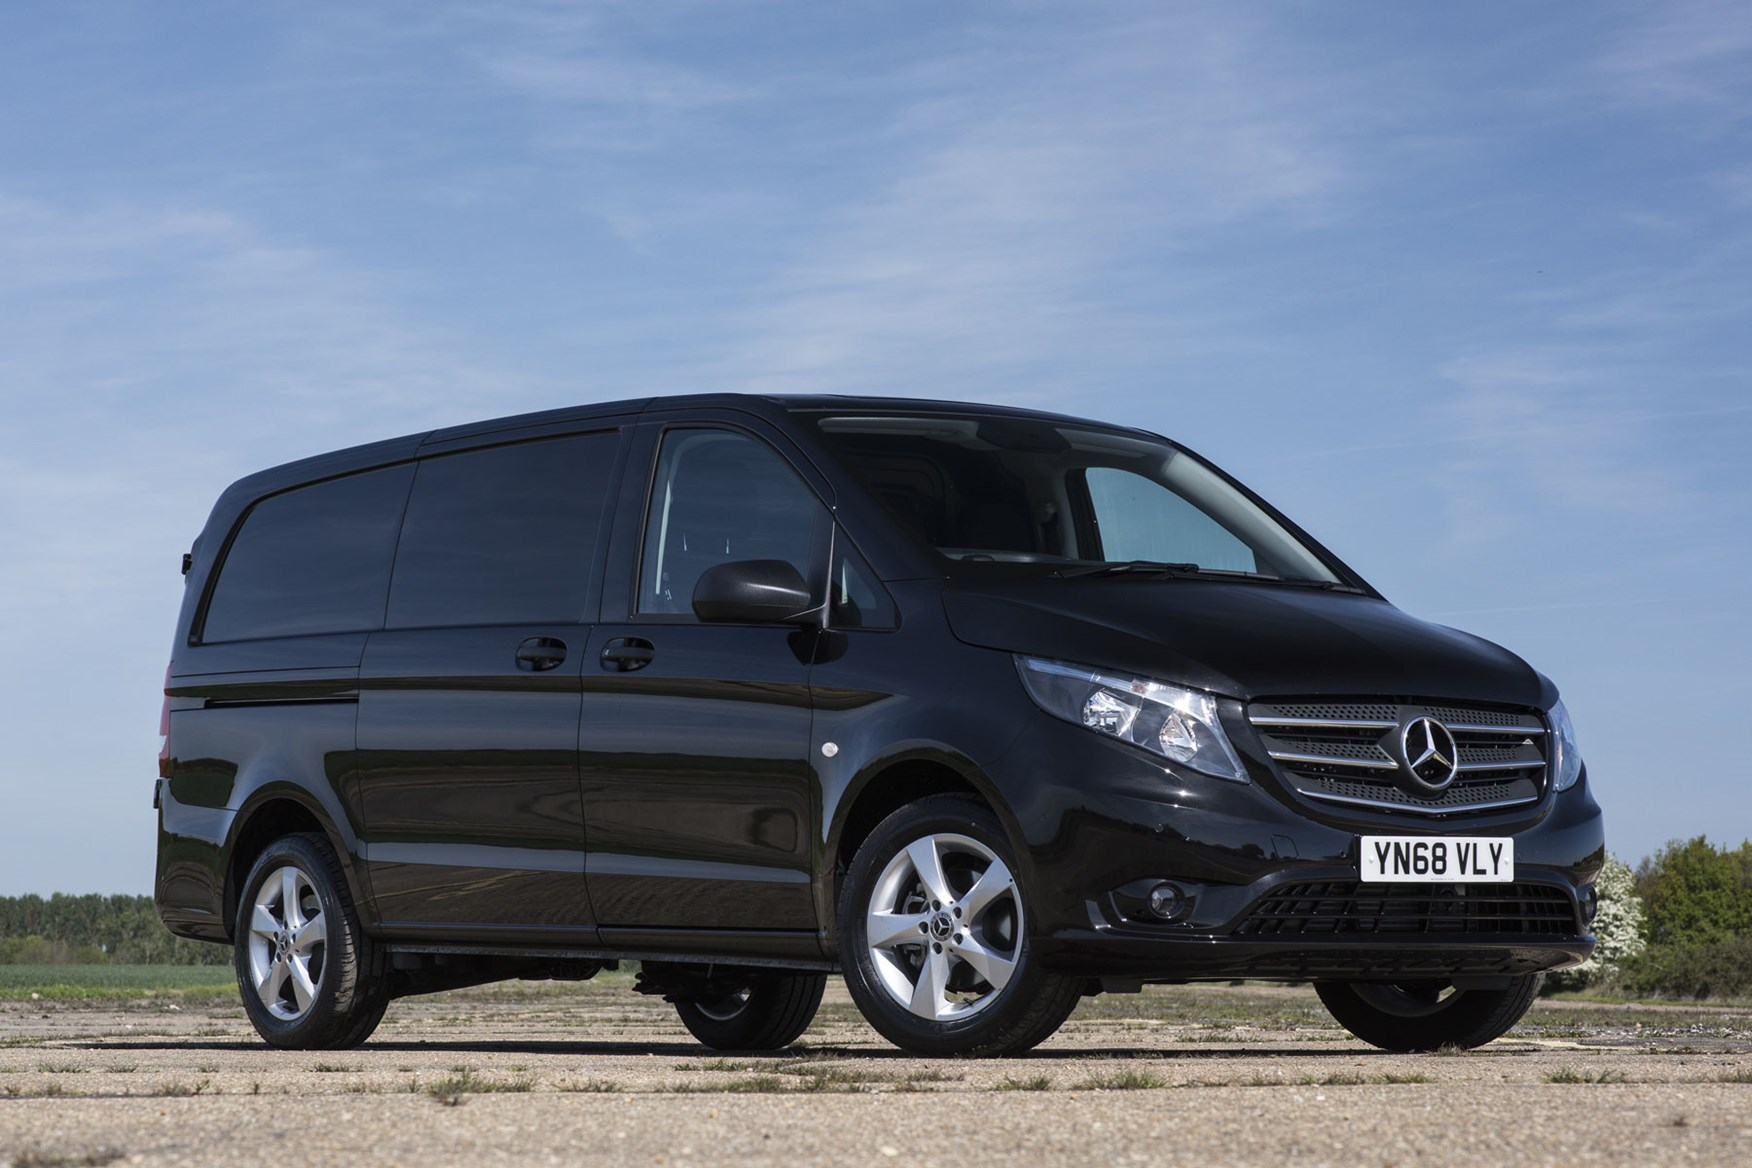 Mercedes-Benz Vito van review (2015-on) | Parkers